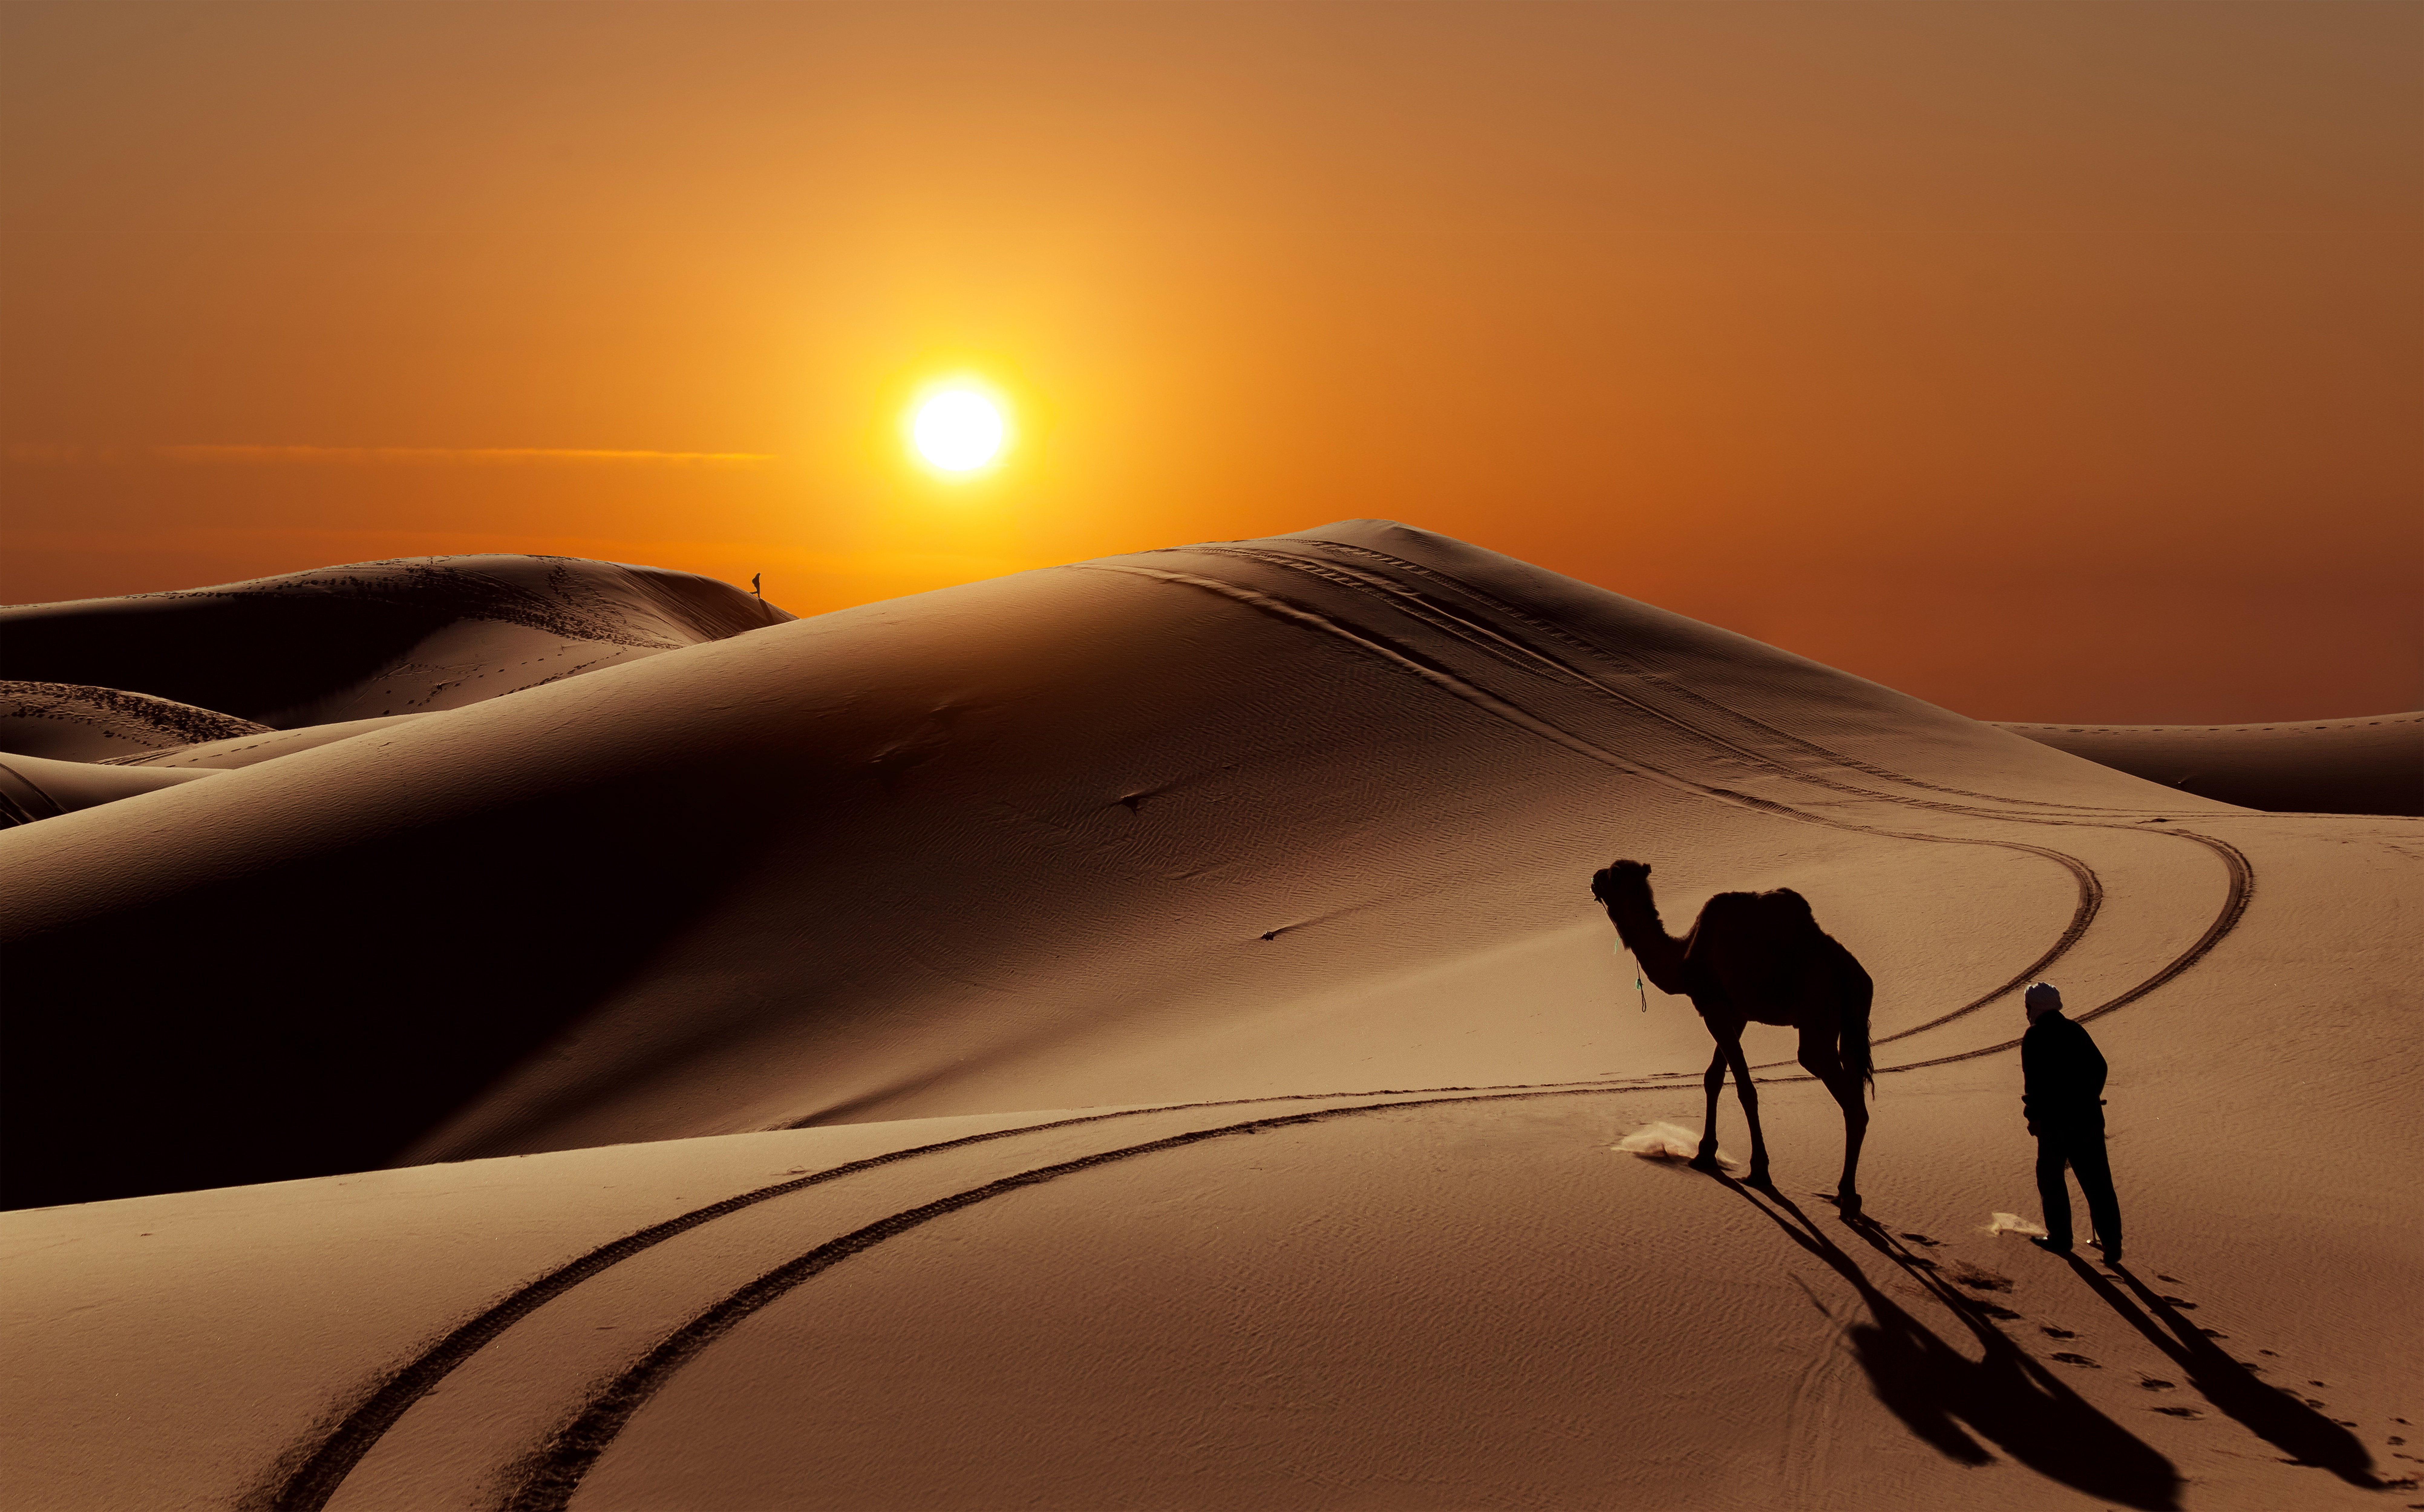 Sun people desert camel wallpaper | 8014x5000 | 559825 ...